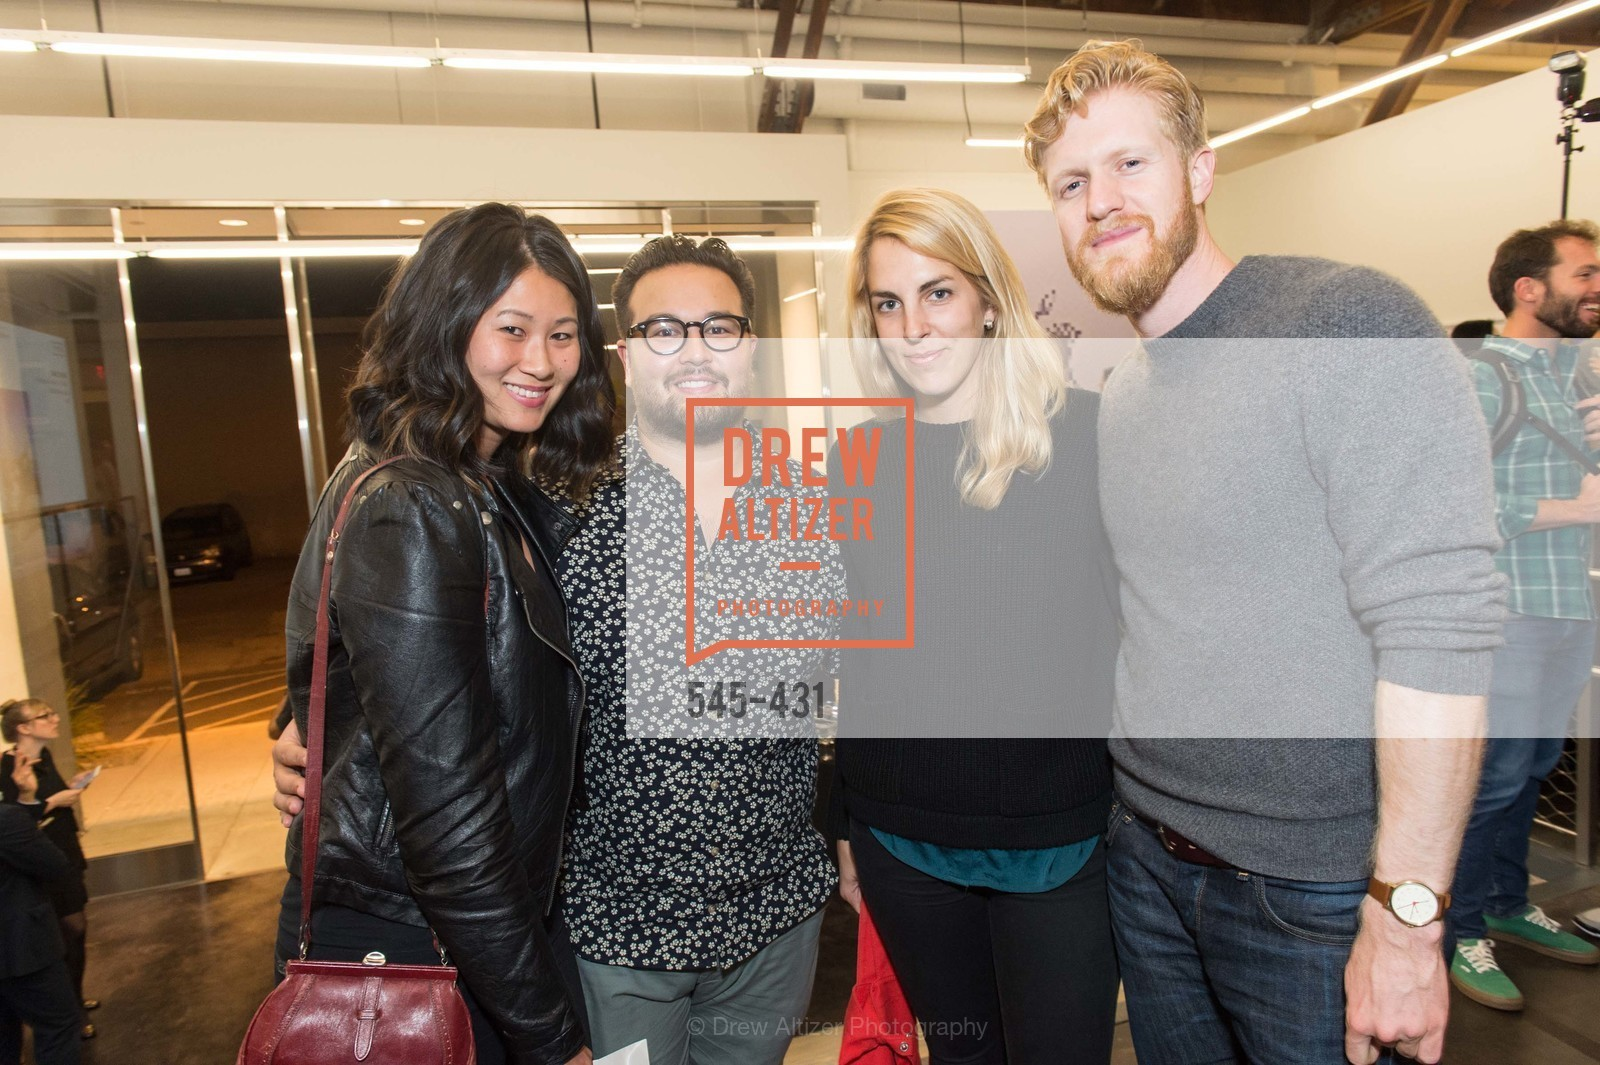 Stephanie Hong, Julian Scharman, Hadley Lyman, Jared Graf, Artsy + Sotheby's Closing Party, Fused. 1401 16th Street, October 30th, 2015